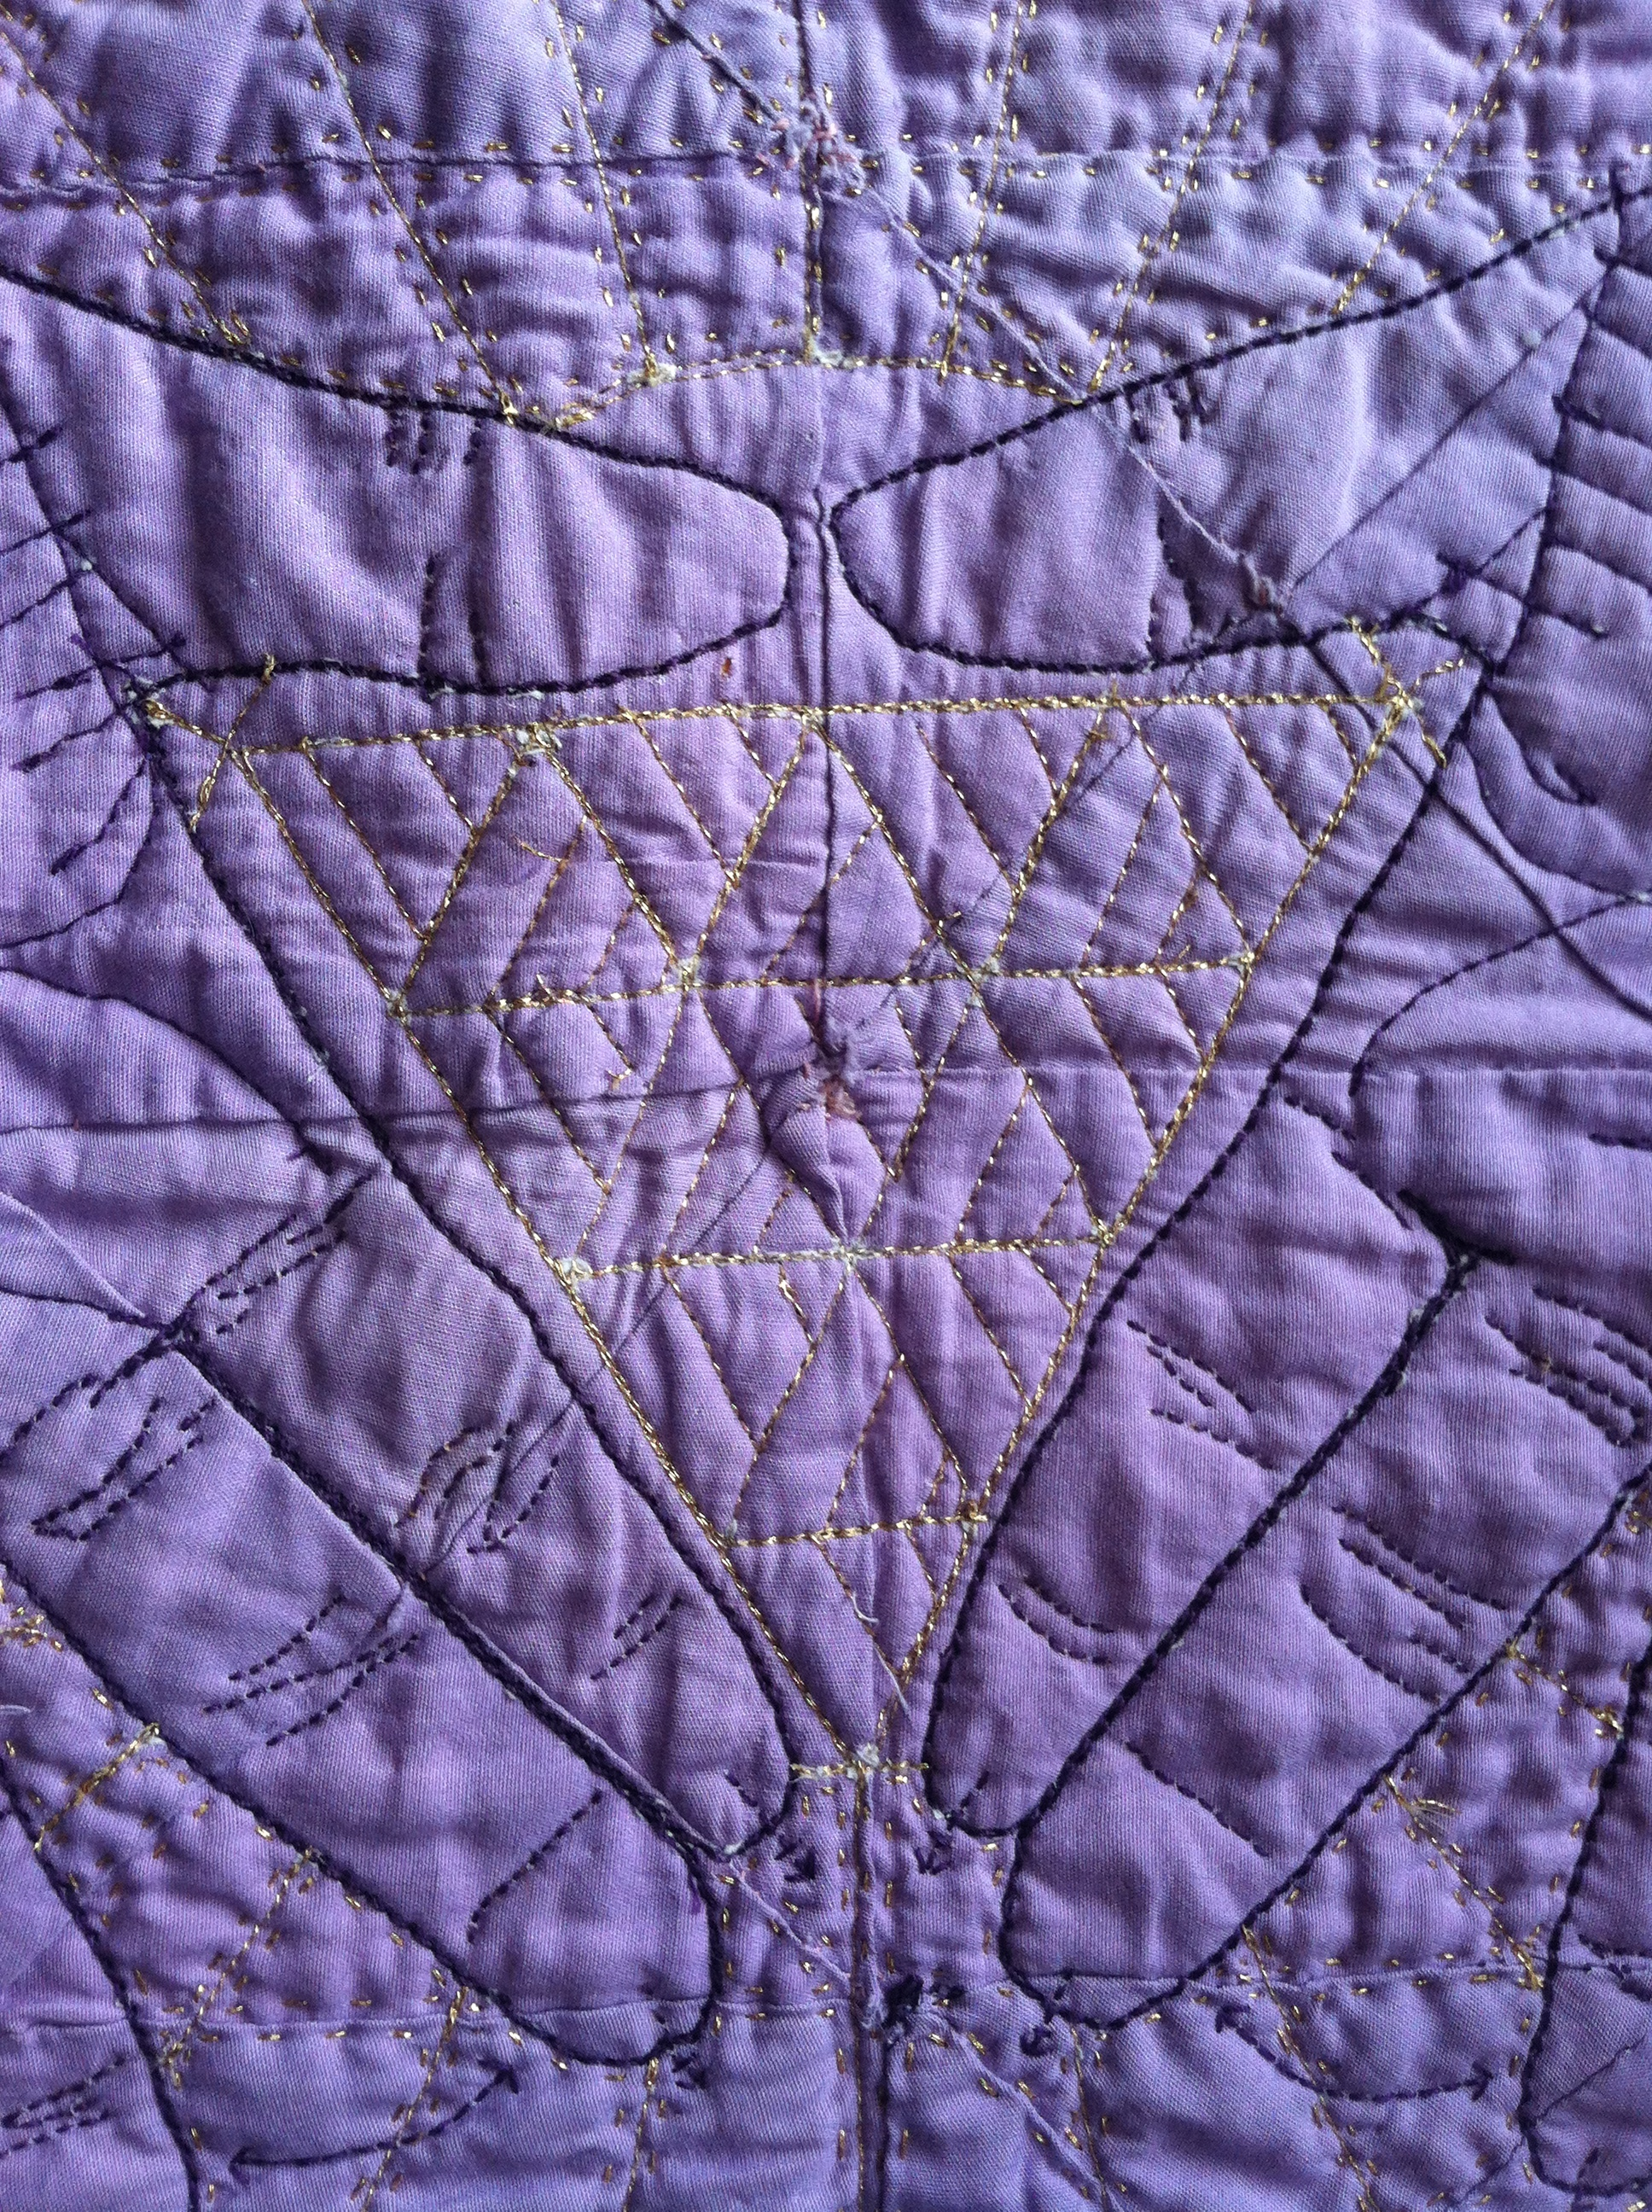 Quilted Lavender Hanky #2